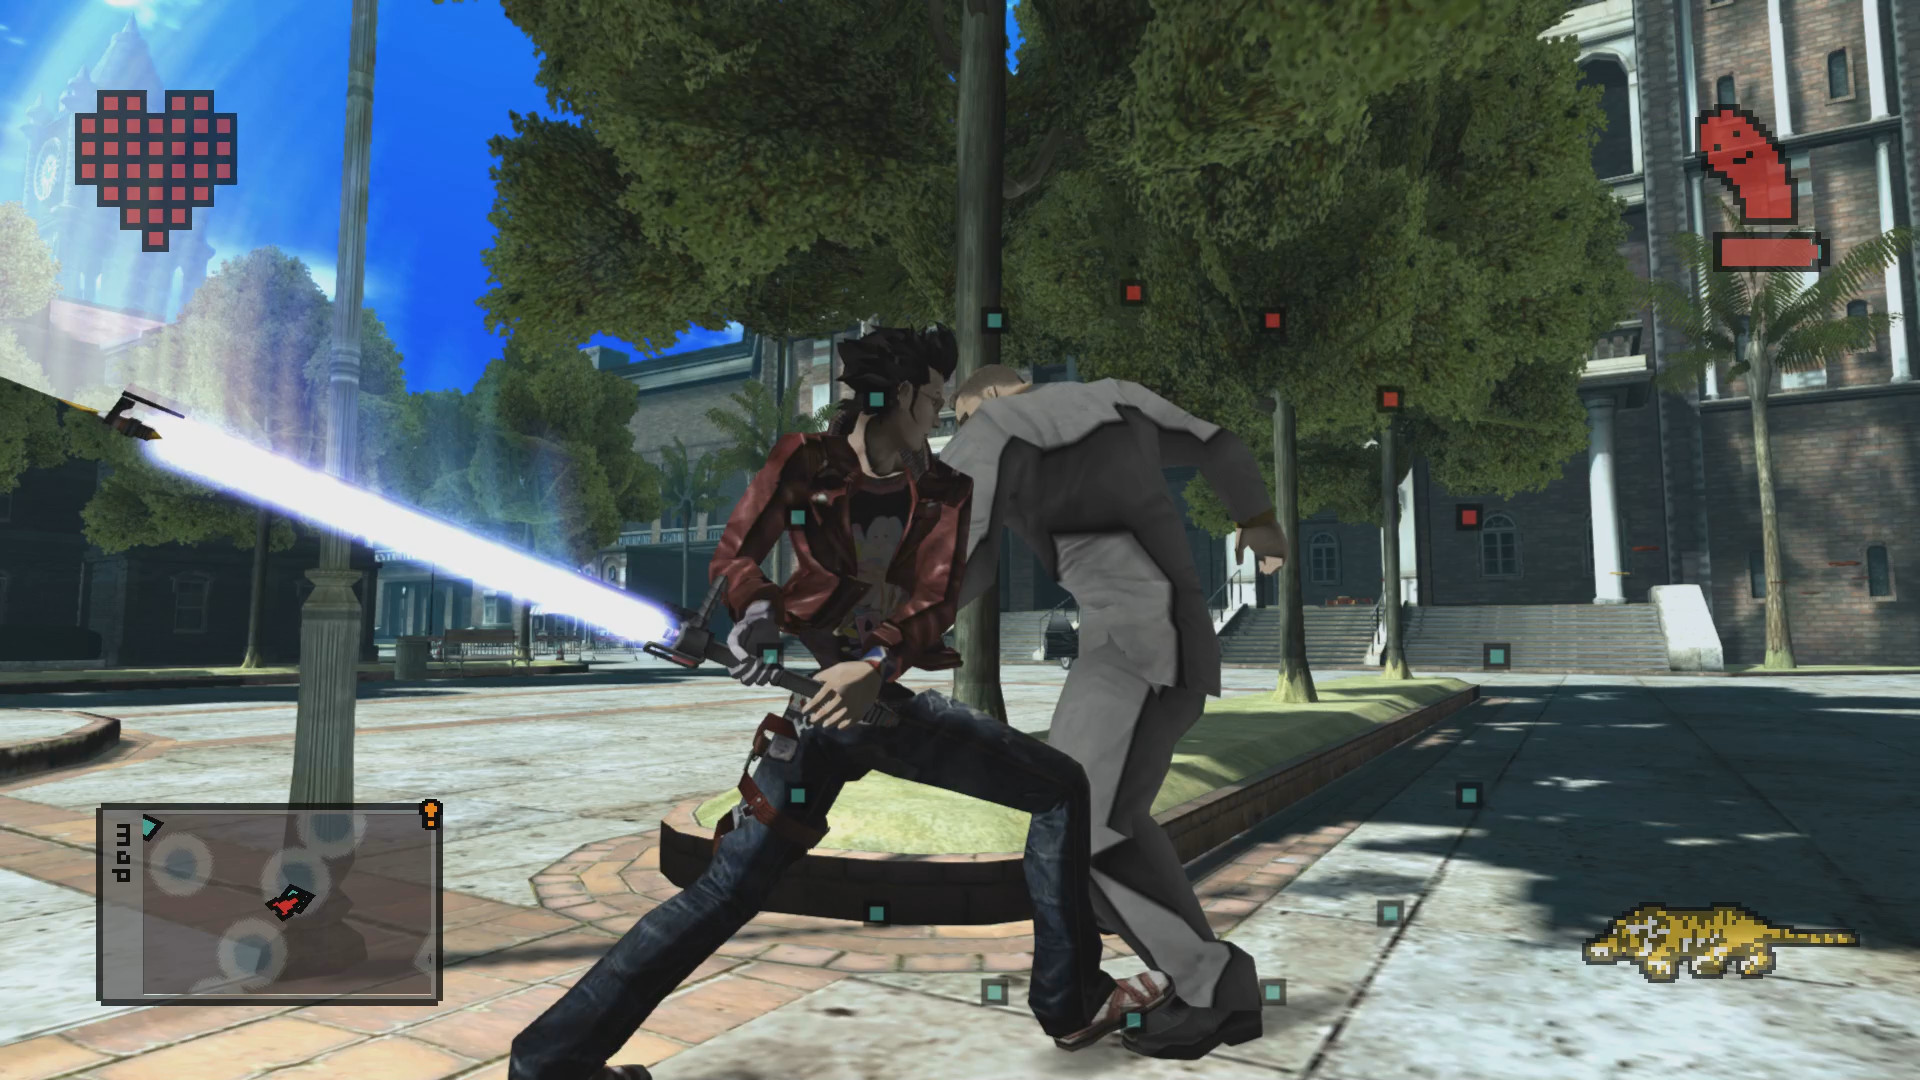 No More Heroes 1 & 2 HD remasters launch on Saturday laptop